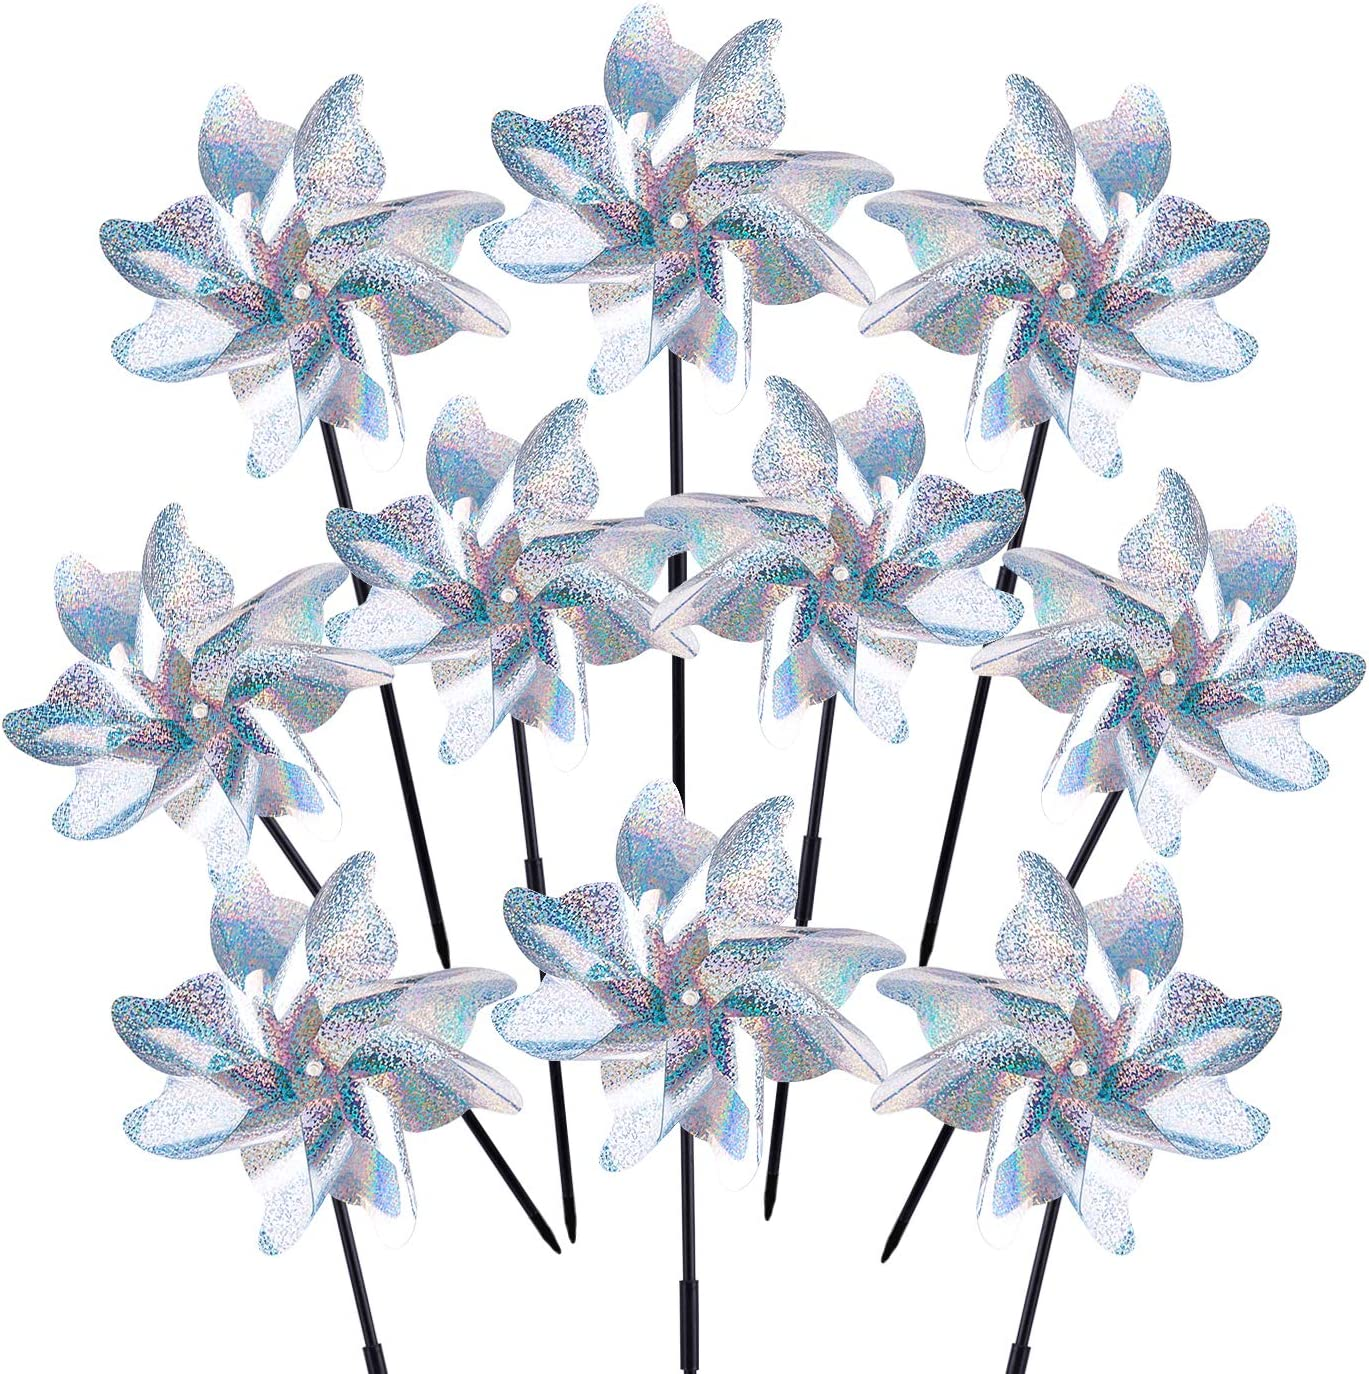 WXJ13 10 Pack Reflective Pinwheels with Stakes Extra Sparkly Pin Wheel Silver Mylar Pinwheels Sparkly Holographic Pin Wheels for Yard and Garden Party